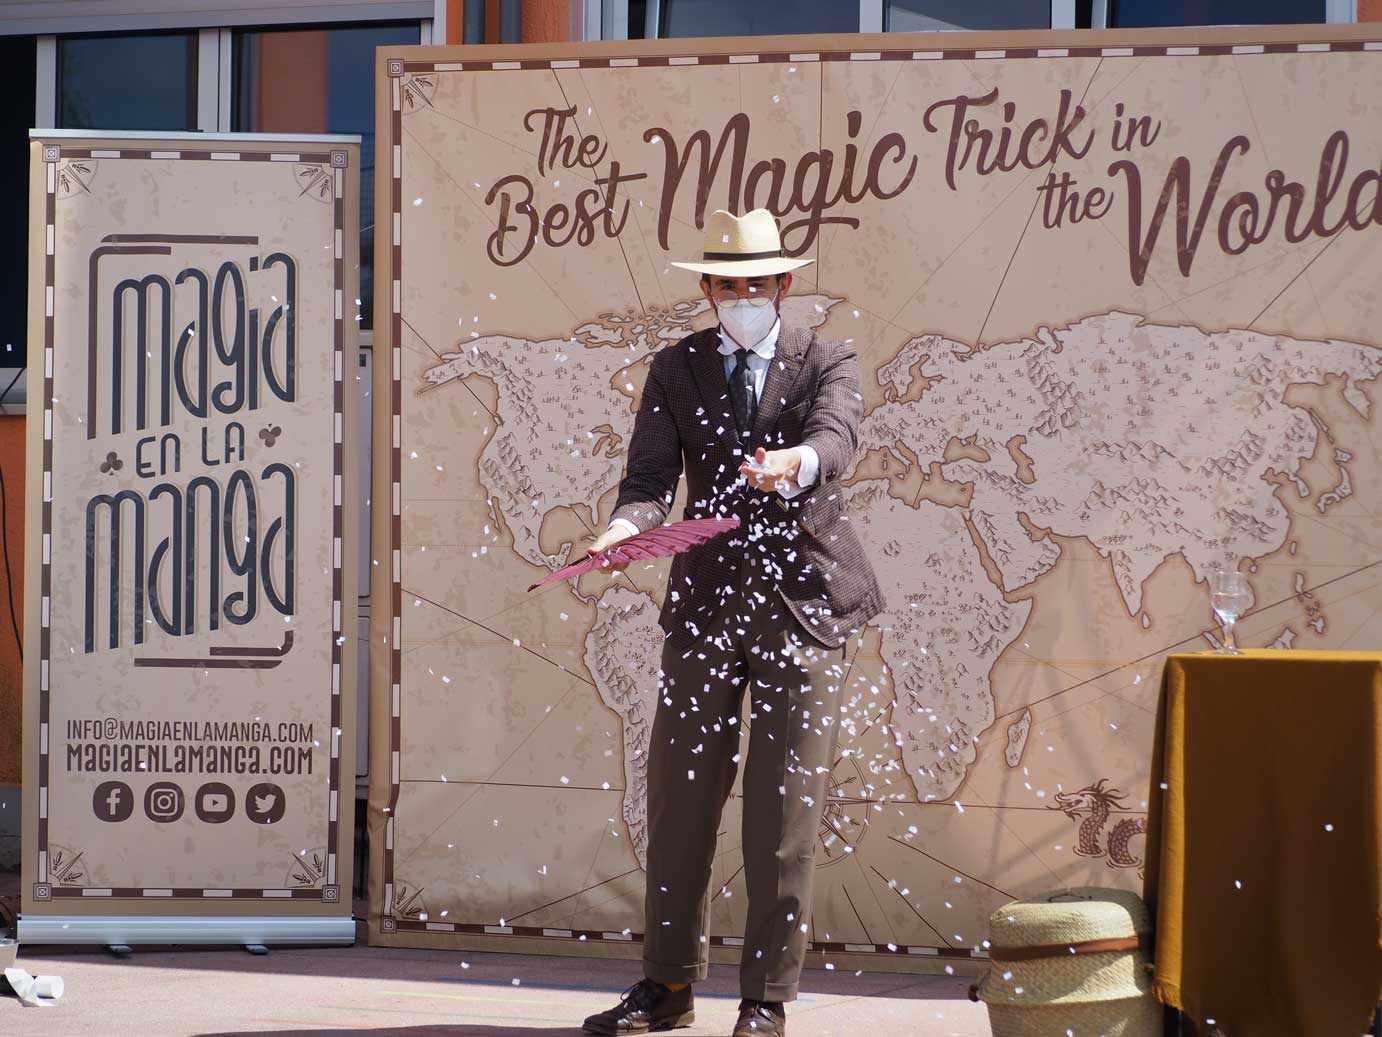 the-best-magic-trick-in-the-world-07